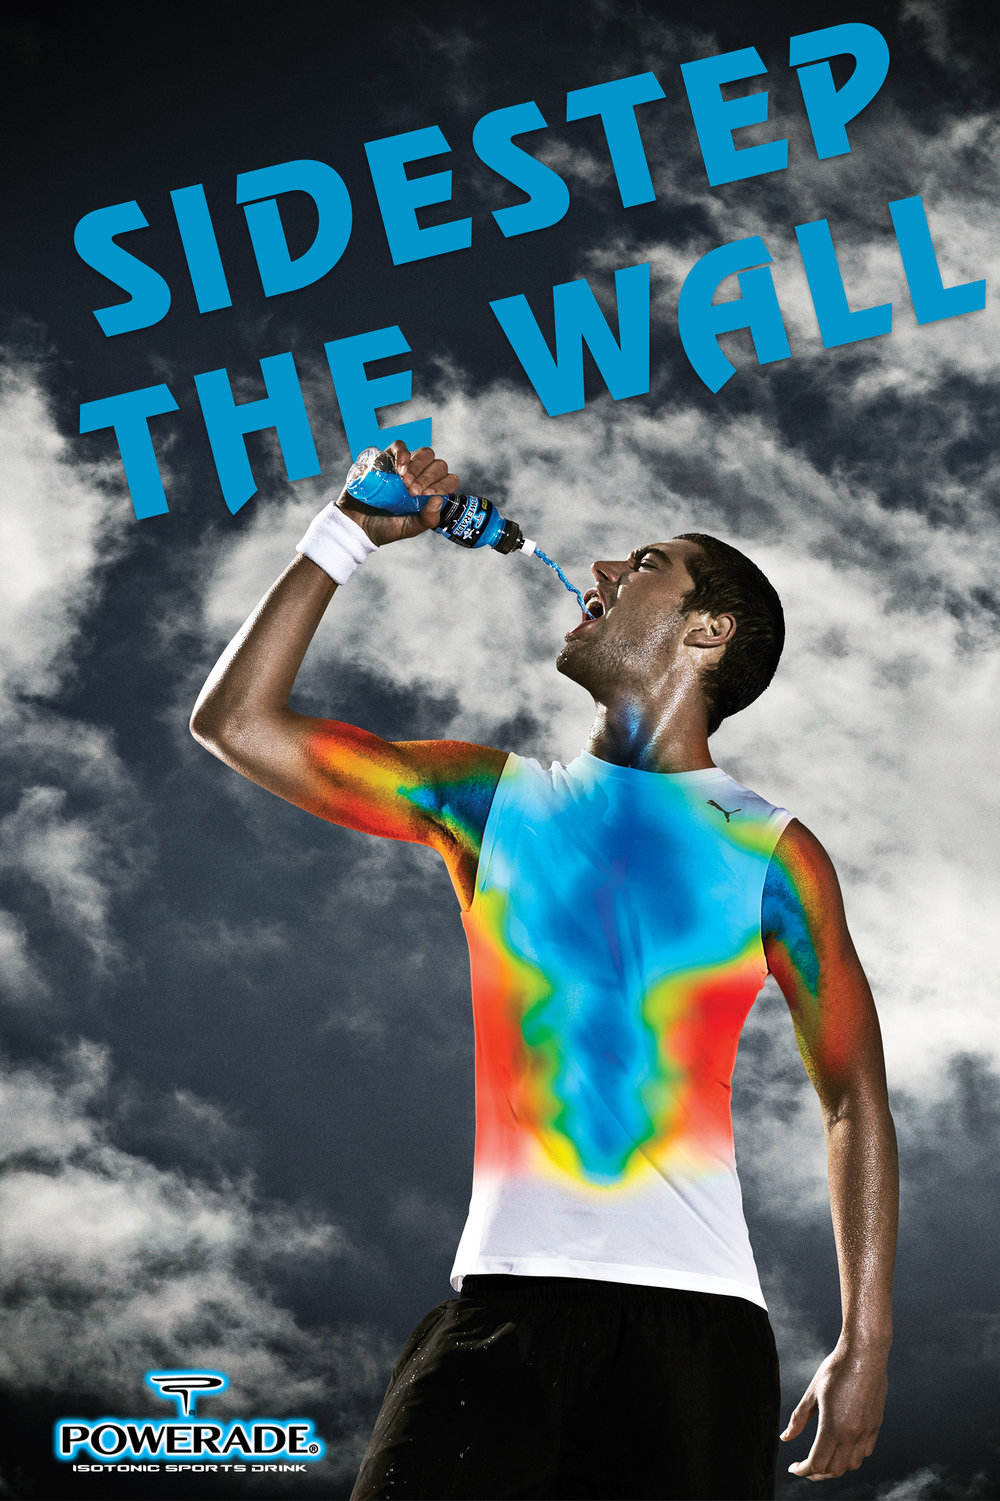 Powerade | Art Direction | Design | By James-Lee Duffy